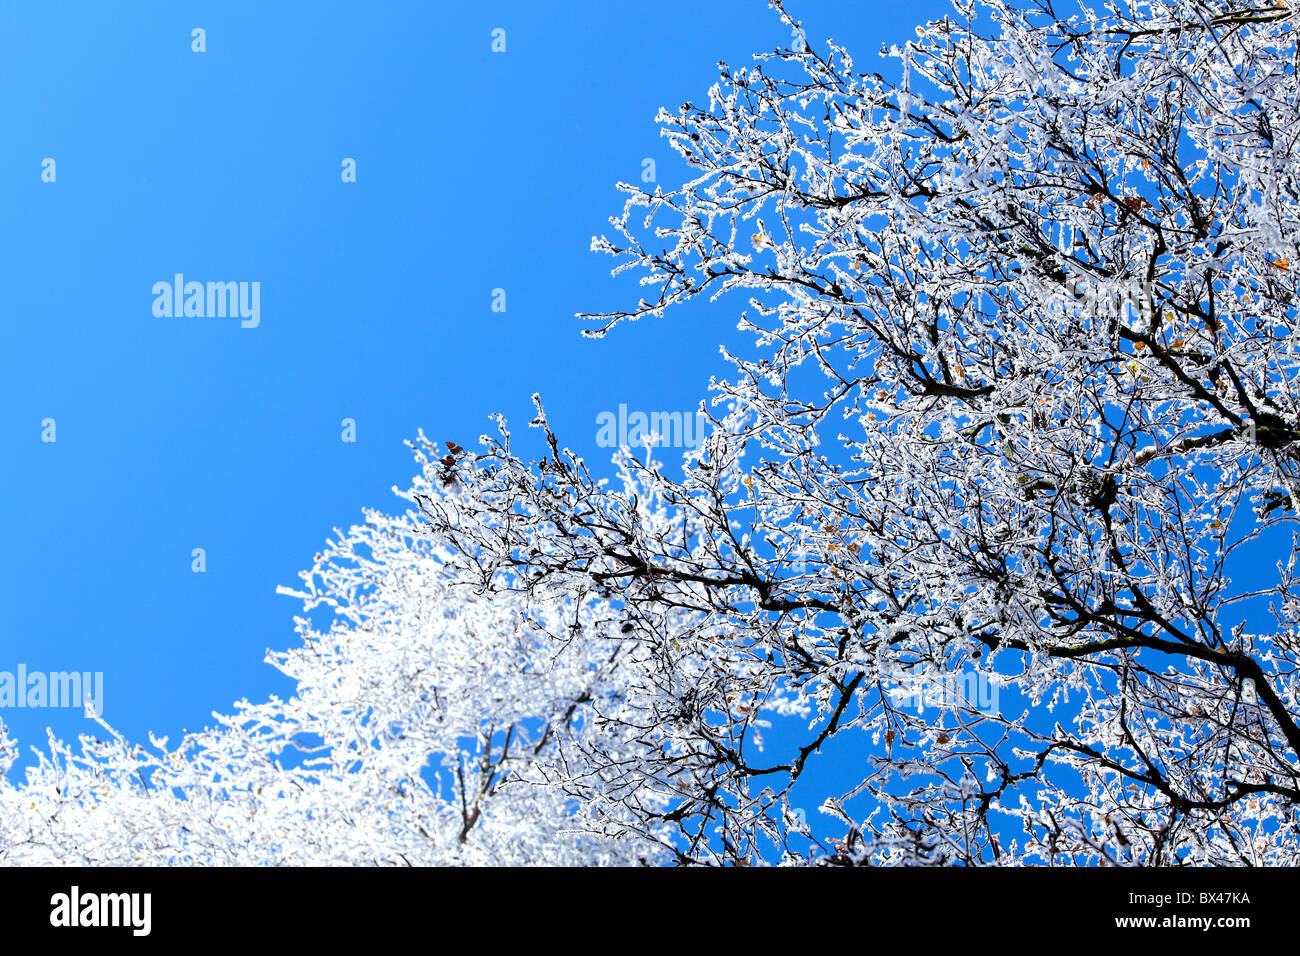 snow covered bare trees against blue sky - Stock Image